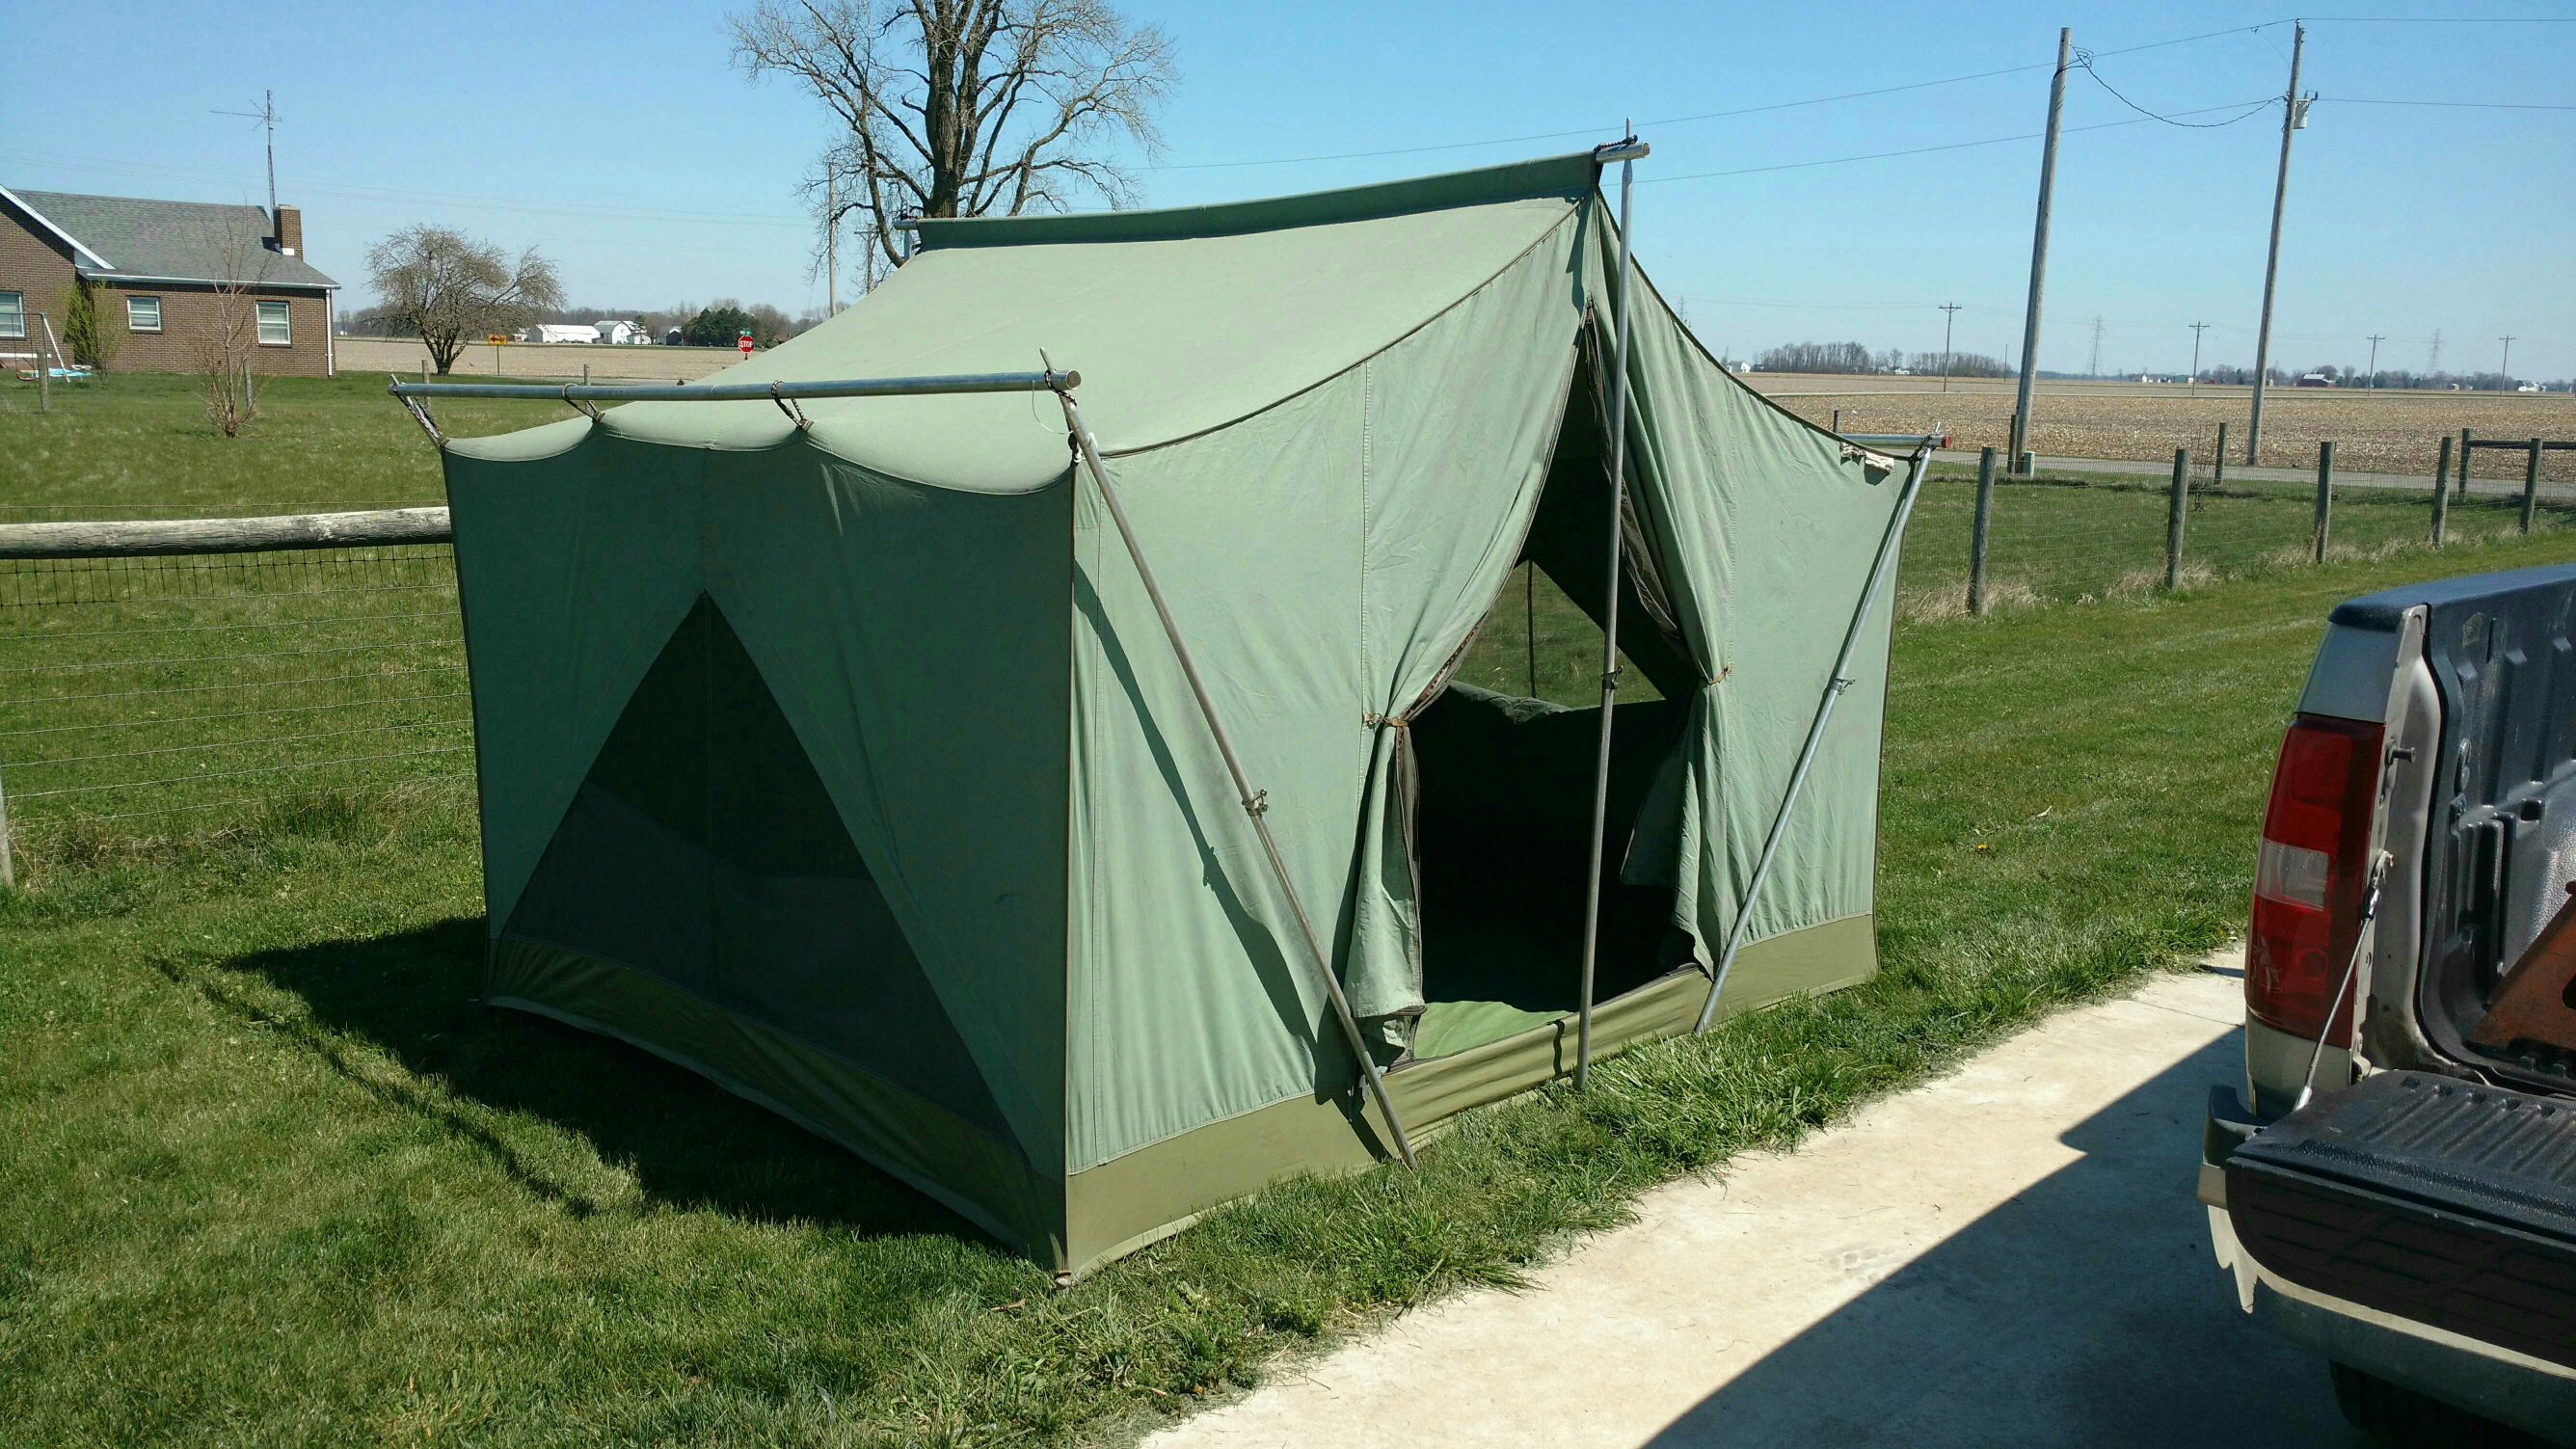 I have a 8x10 x 6u00278  tall eureka canvas cabin tent in good condition all zippers in good working condition and recently waterproofed. & Eureka canvas cabin tent | Ohio Game Fishing - Your Ohio Fishing ...